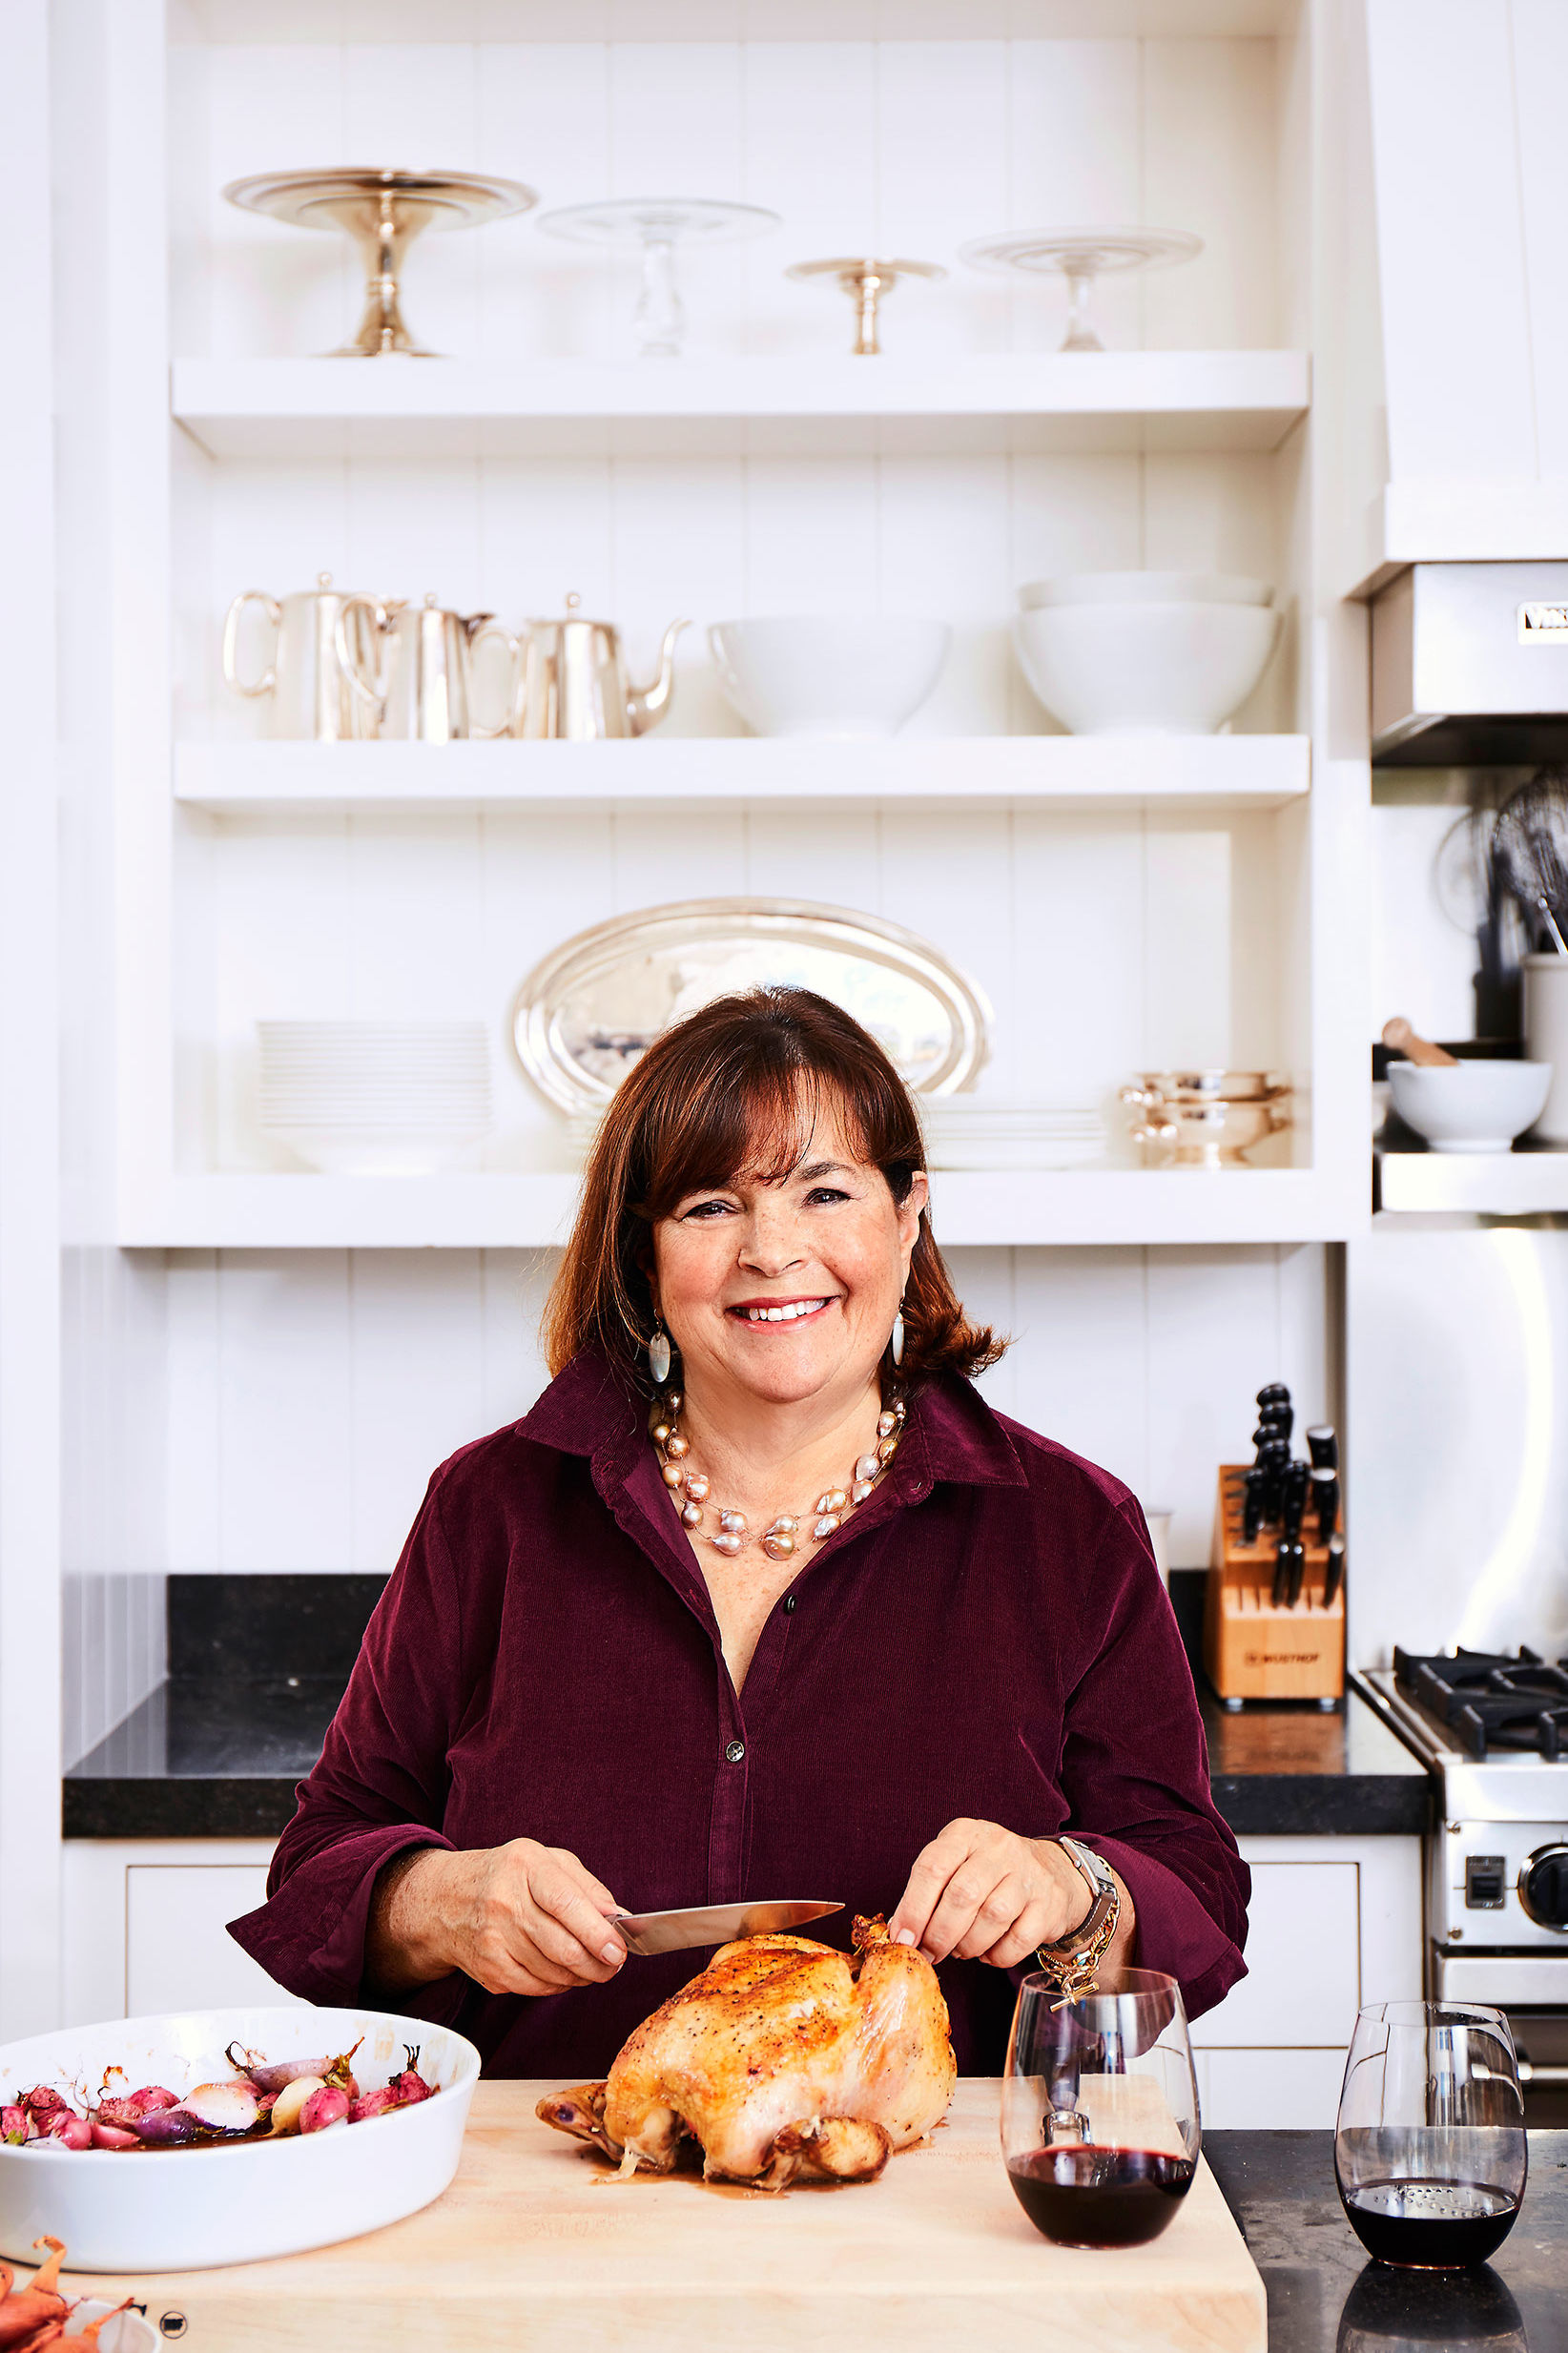 Ina Garten Has Eaten This Same Breakfast 'Every Single Day for 10 Years'